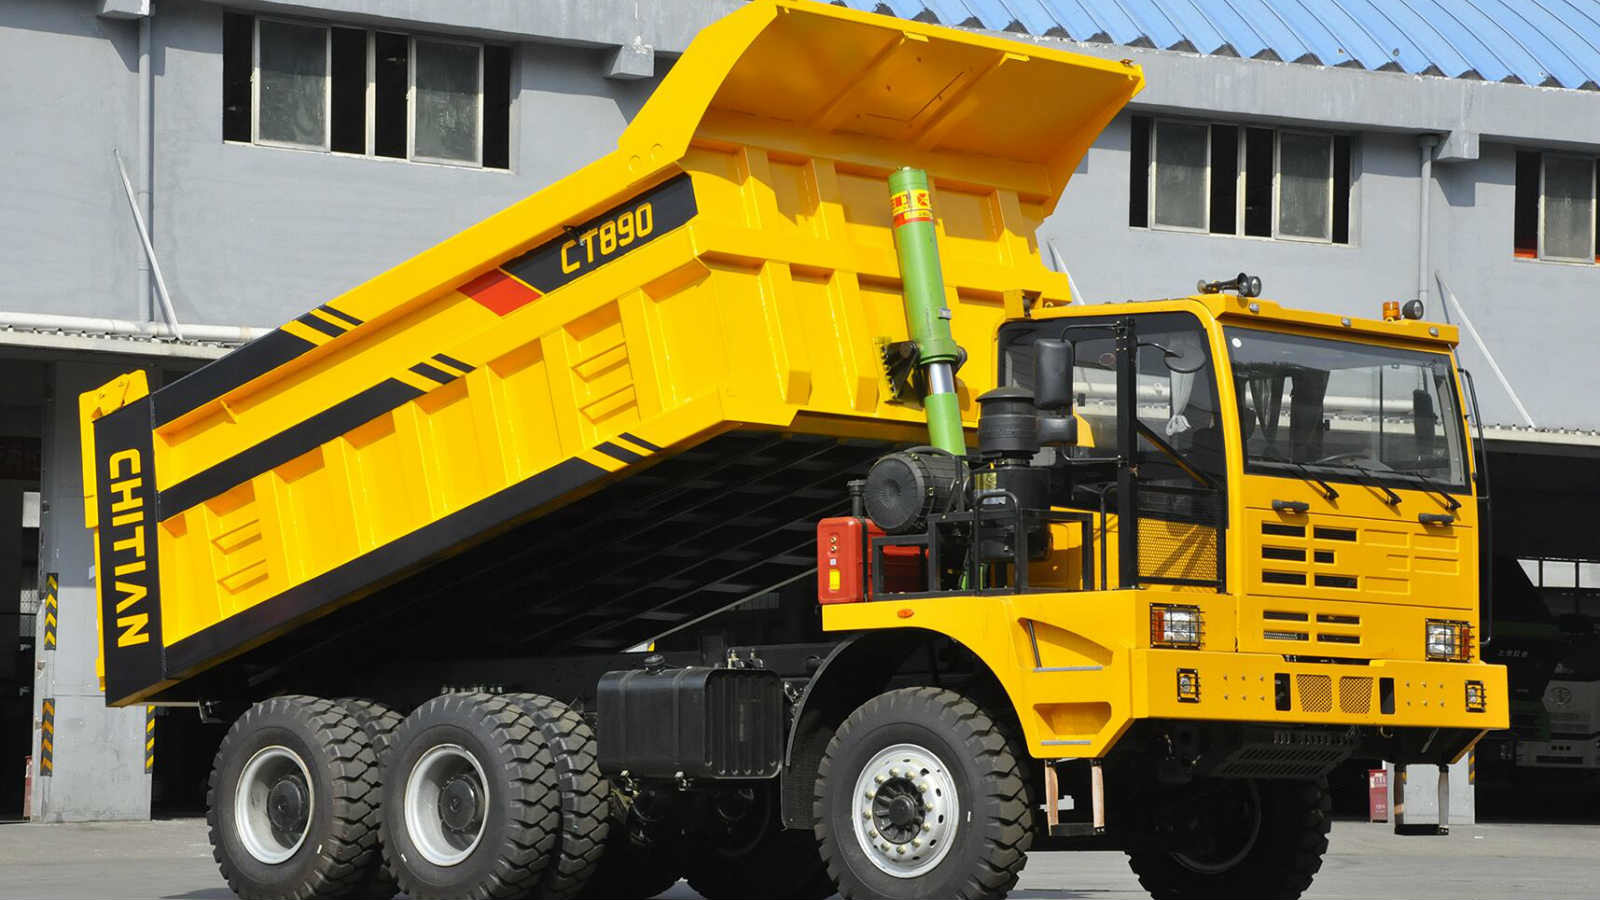 CT890 6X4 Euro 2 Mining Dump Truck With WP12G430E31 Engine And Manual Transmission